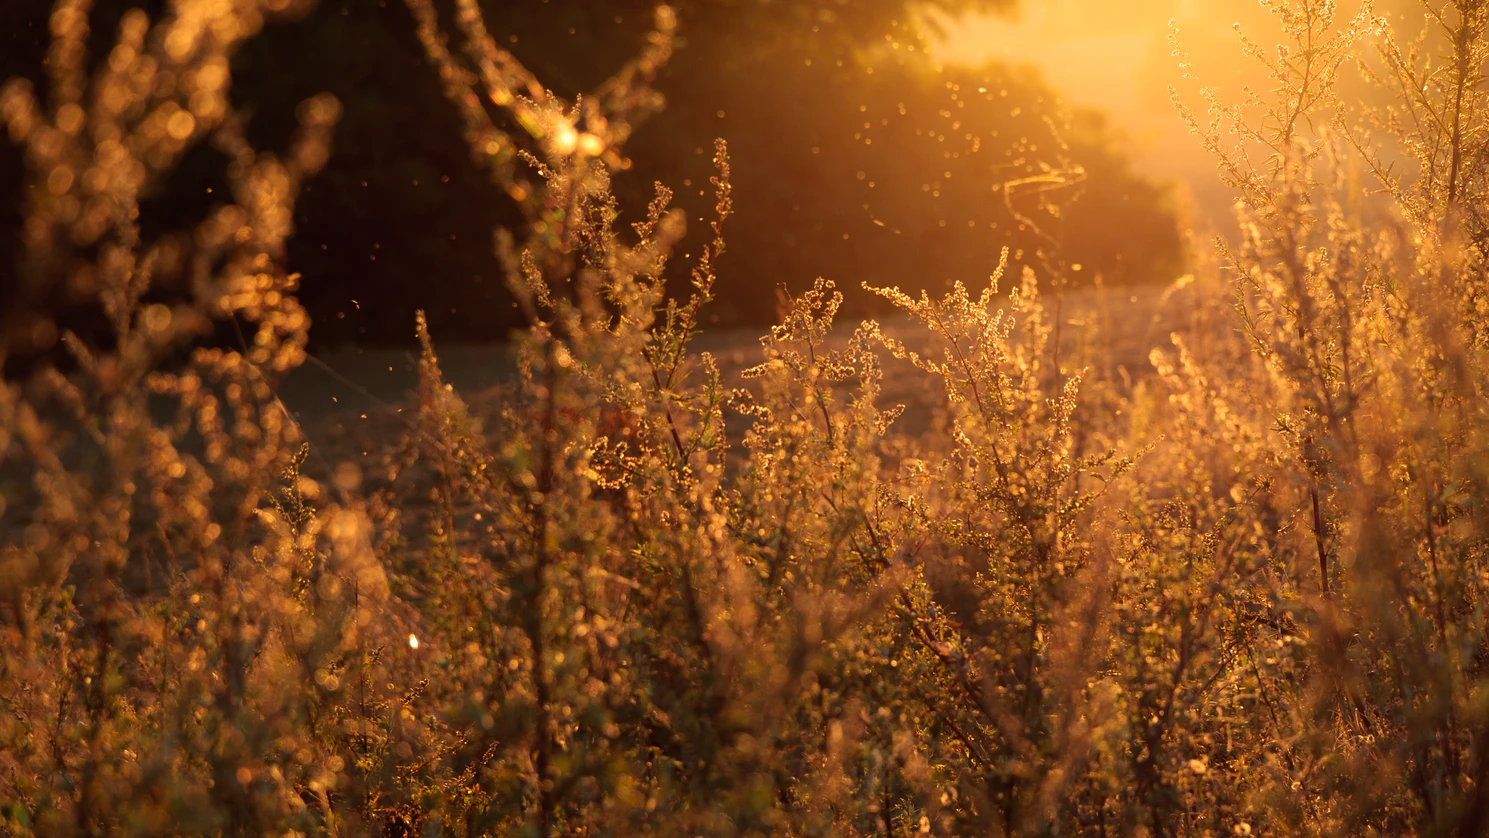 Plants that cause fall allergies at sunset